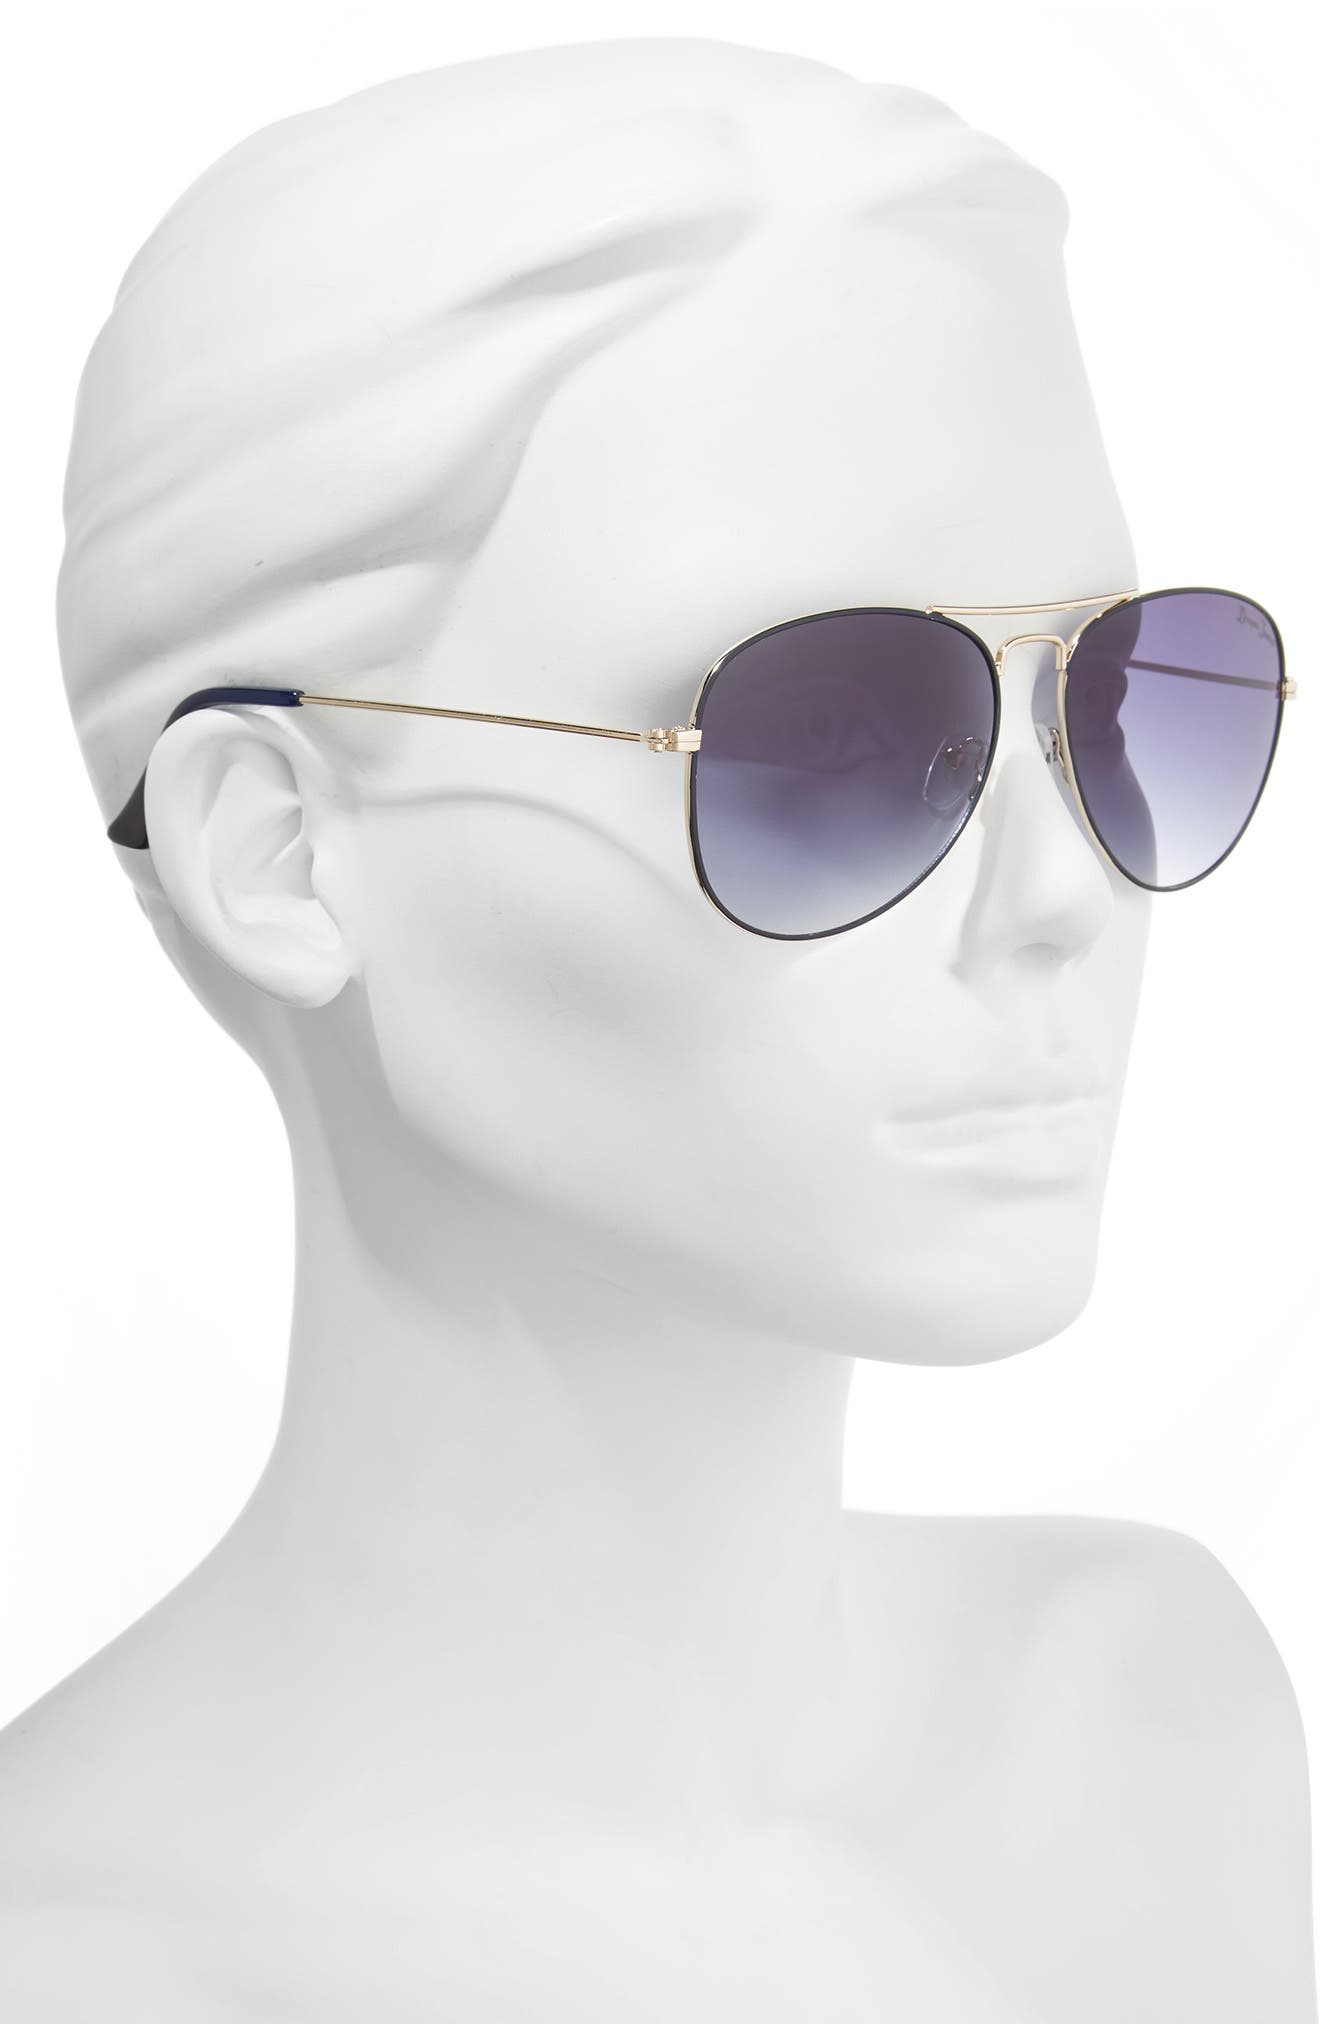 58mm Gradient Aviator Sunglasses,                             Alternate thumbnail 2, color,                             Blue